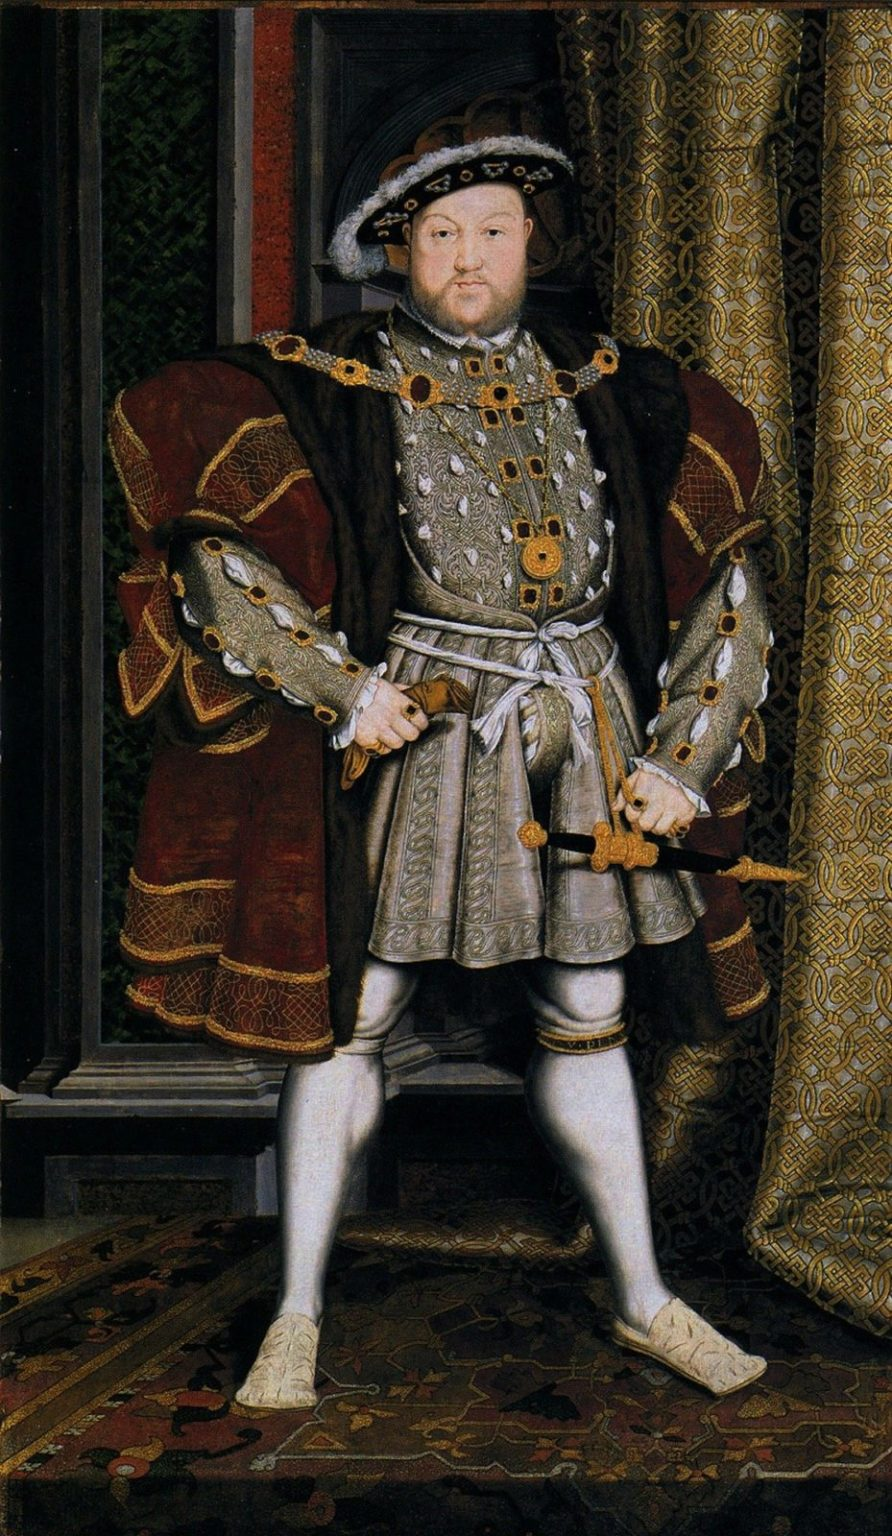 The first stairlift was made for Henry VIII